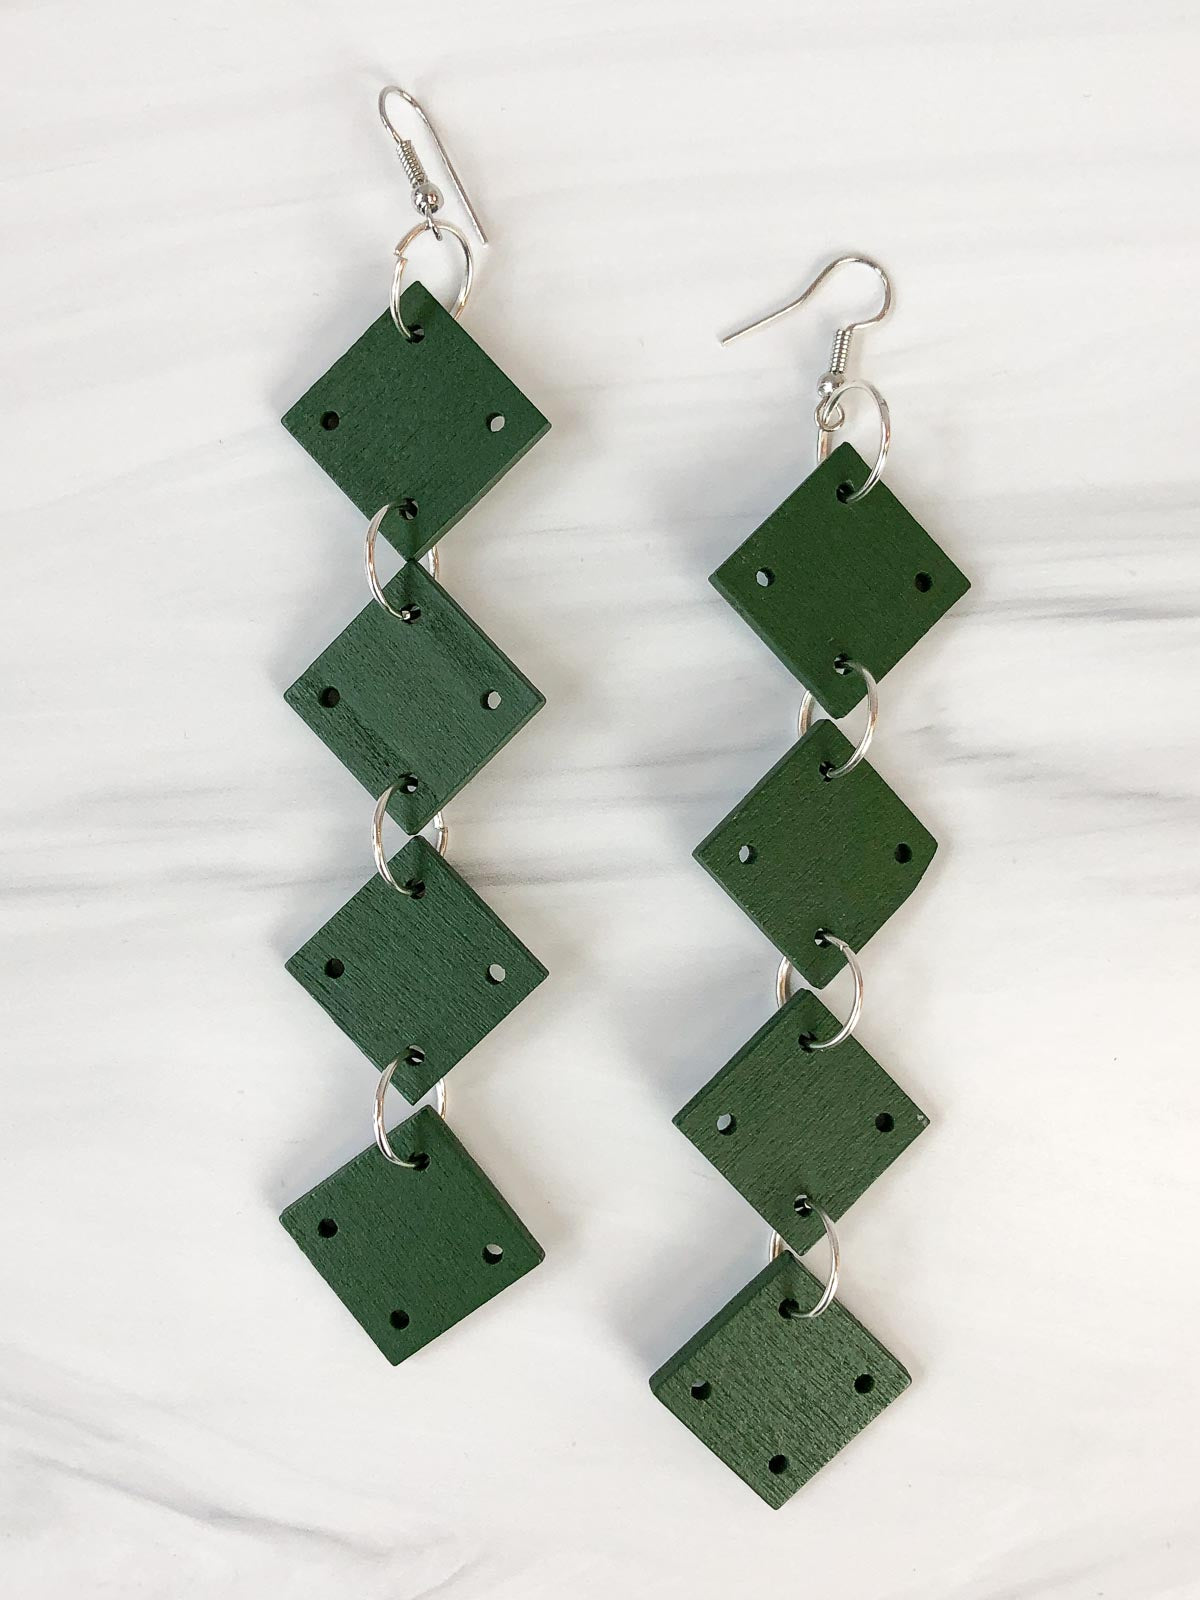 Jianhui London 4 Square Drop Earrings, Racing Green